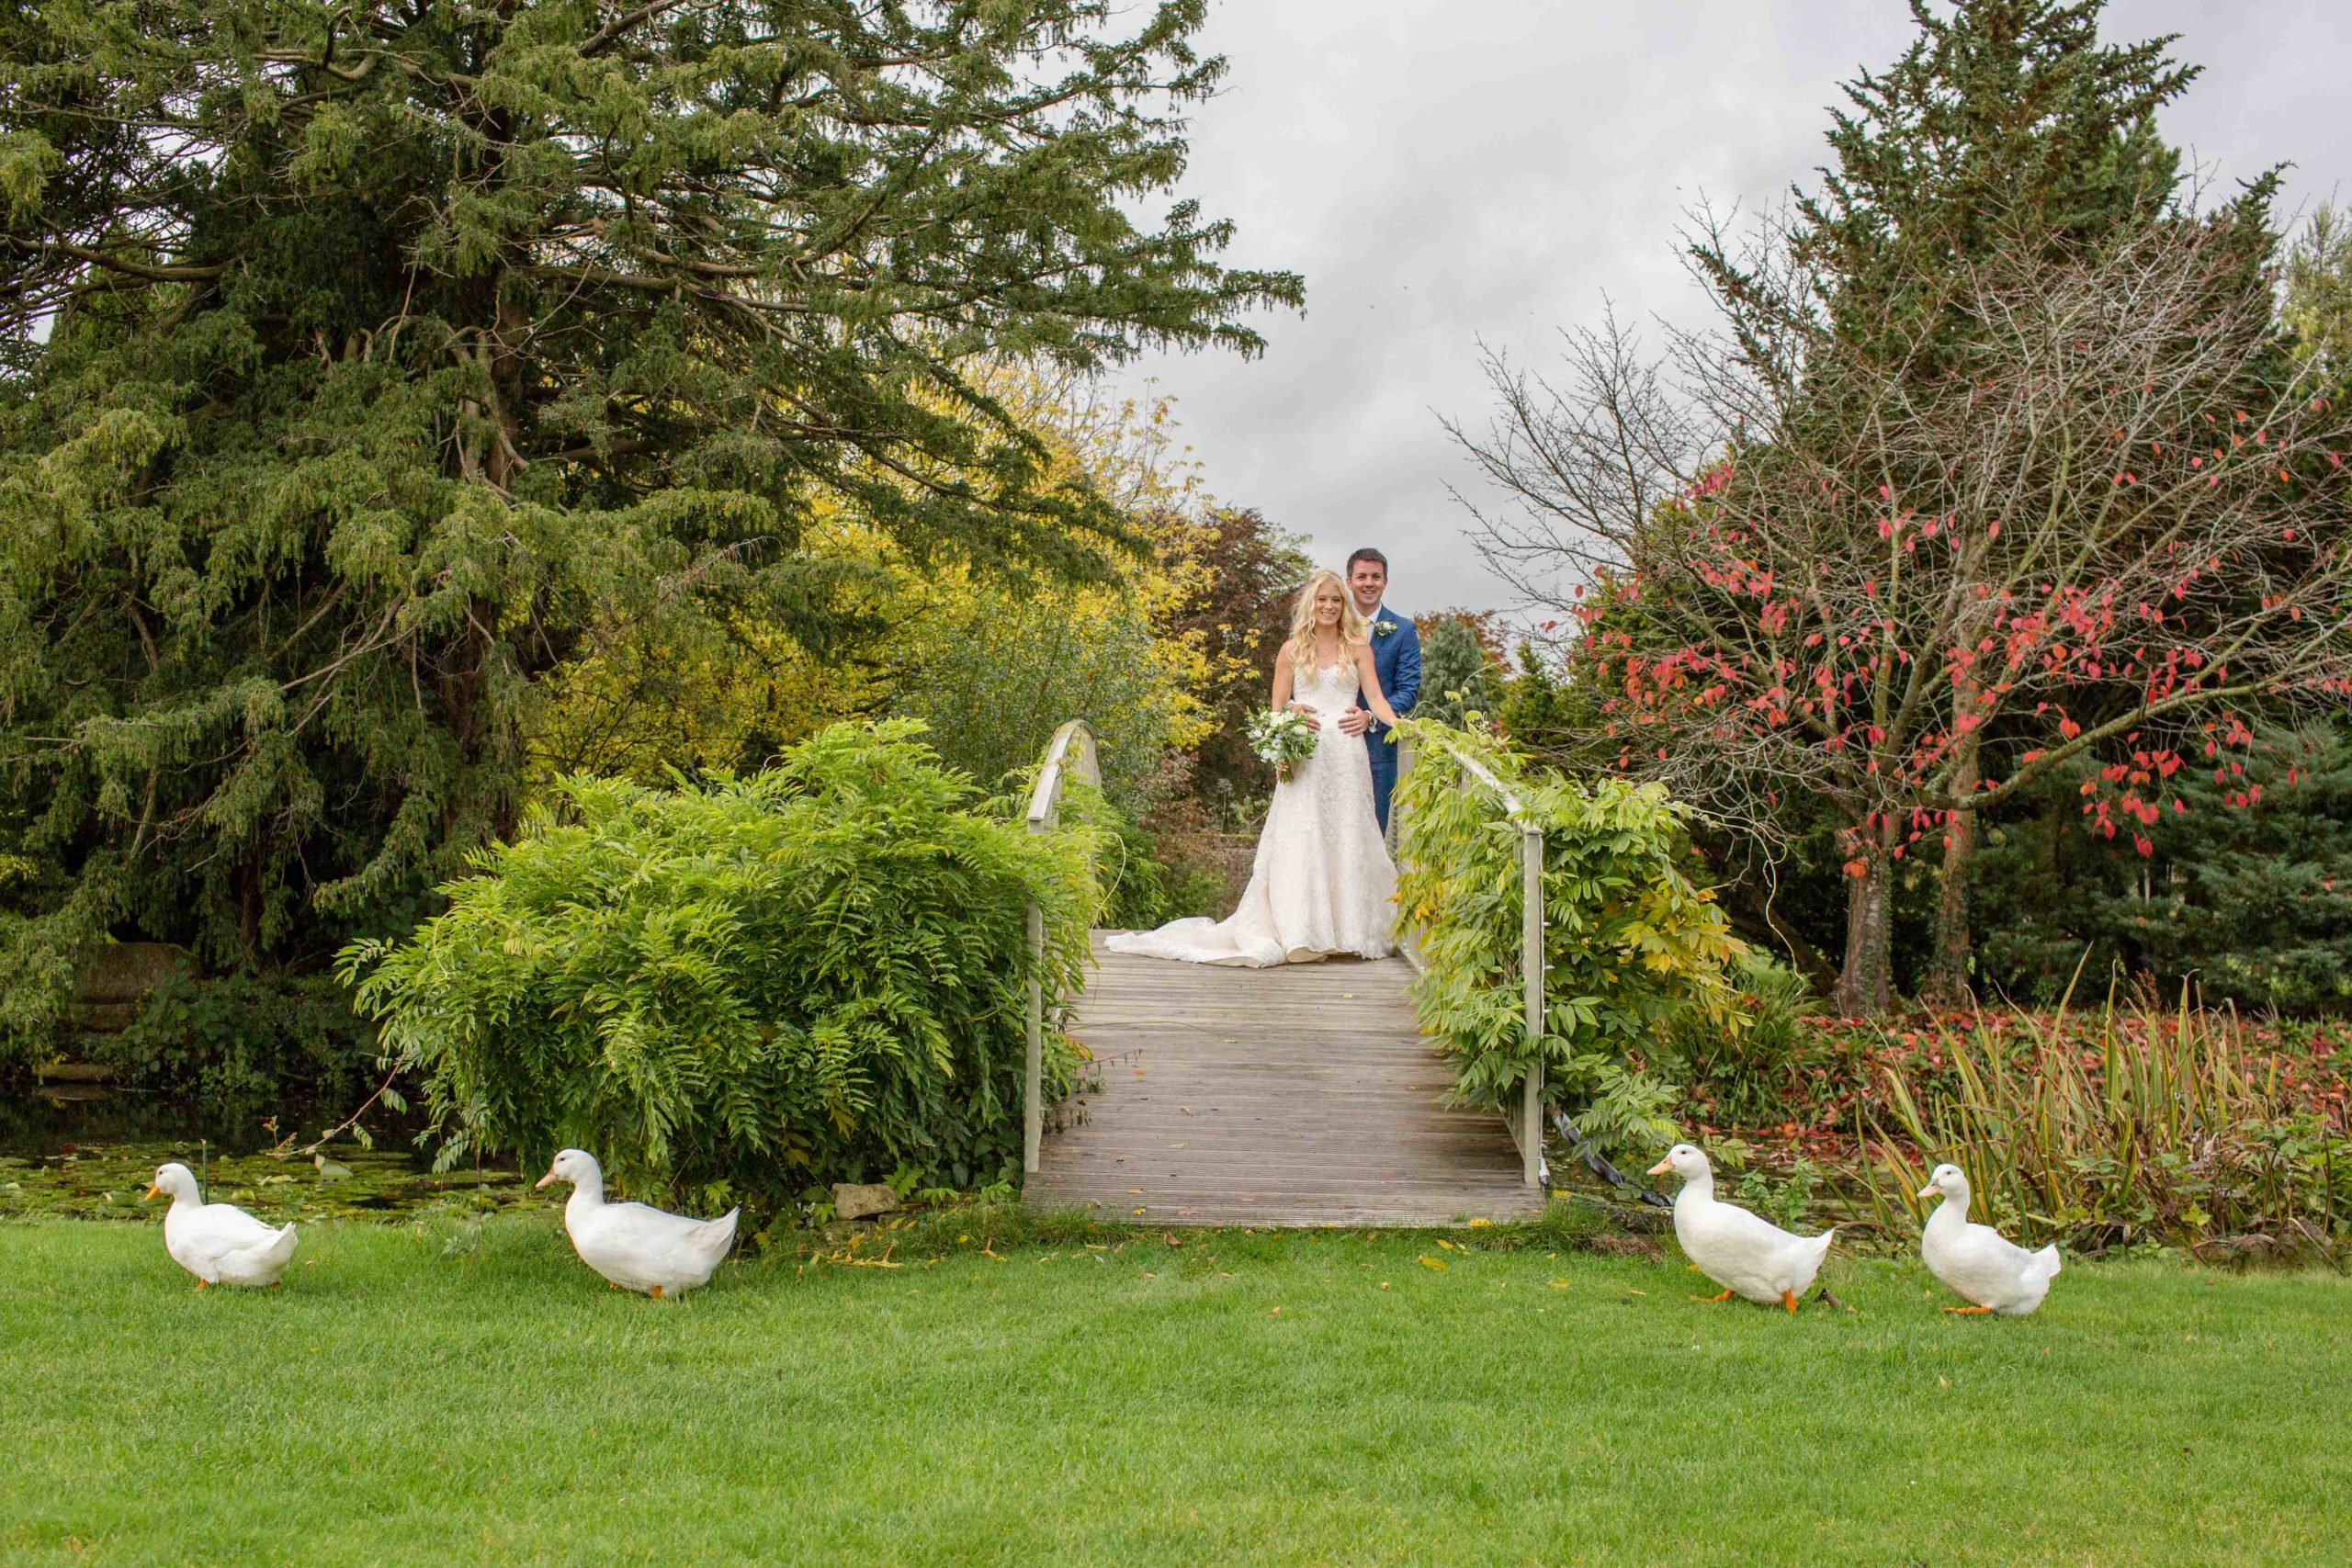 Cotswolds Wedding Photography, Groom hugging Bride stood on a wooden bridge with ducks walking across lawn in foreground, Caswell House, Oxfordshire